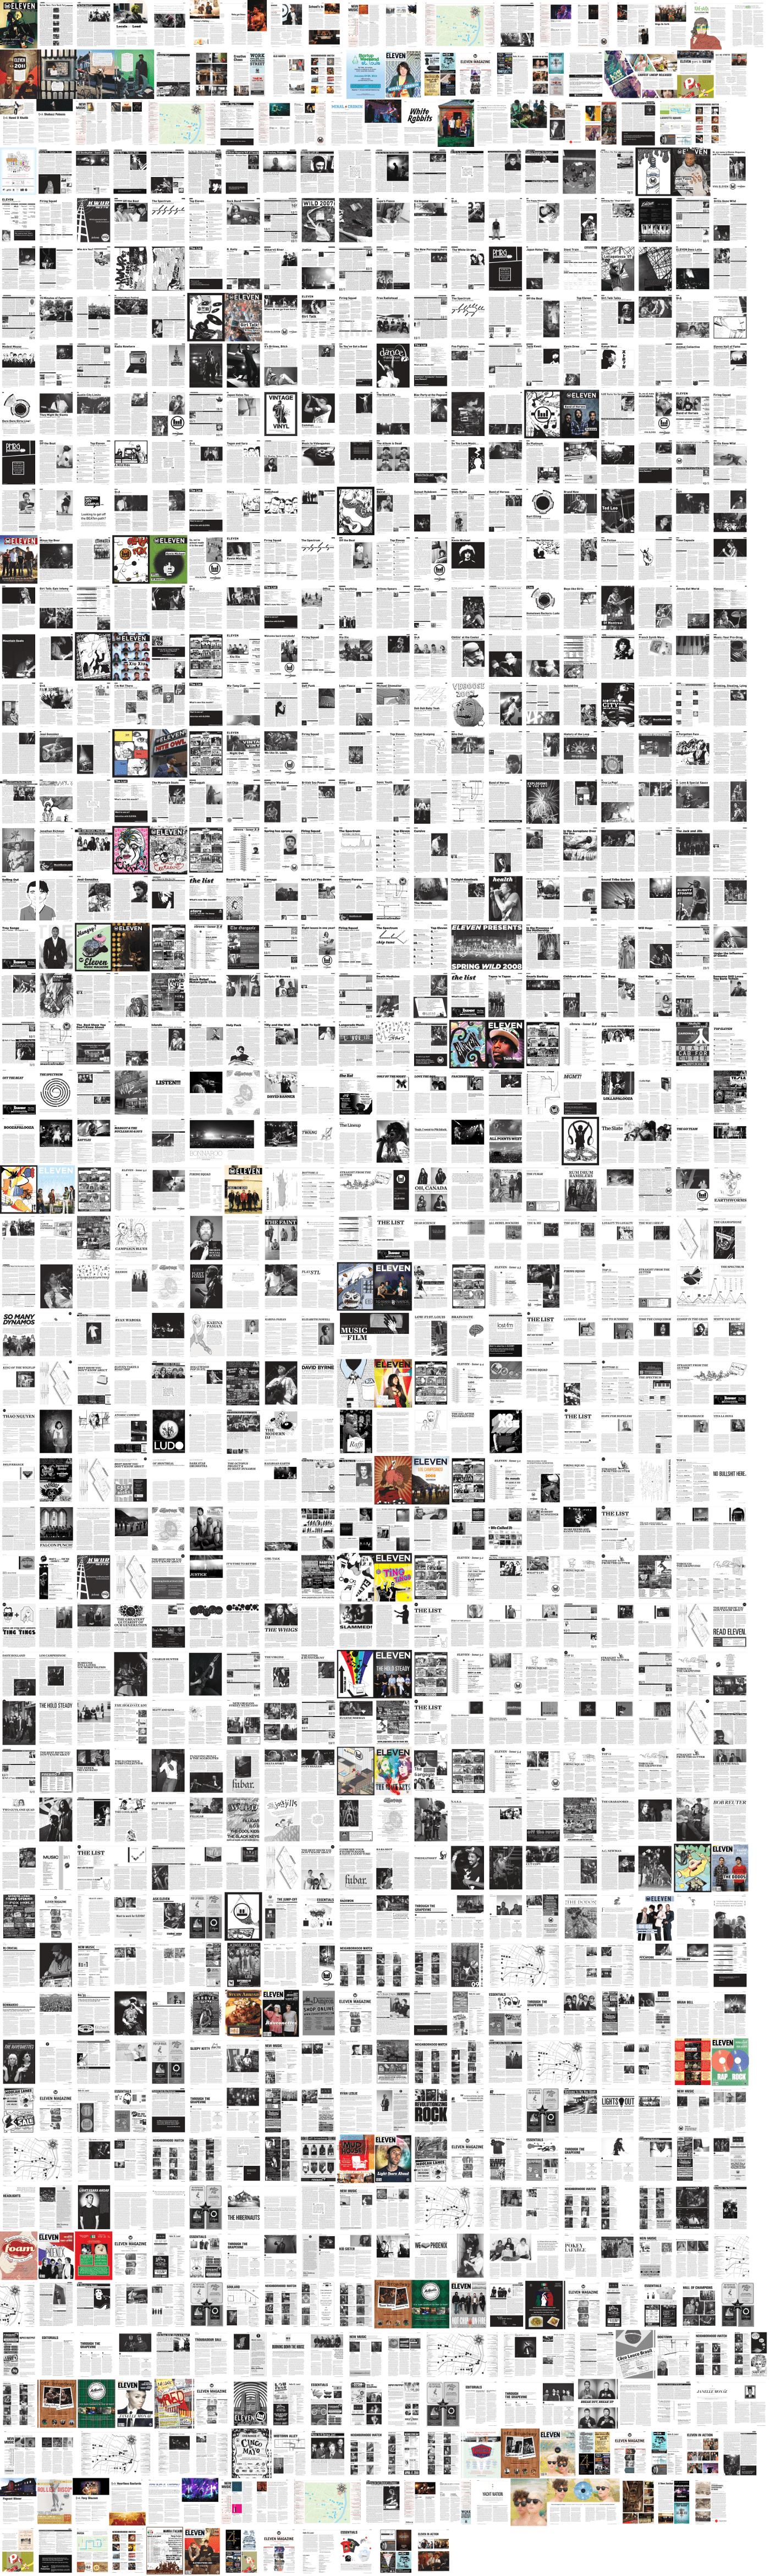 All of the pages I designed for Eleven.